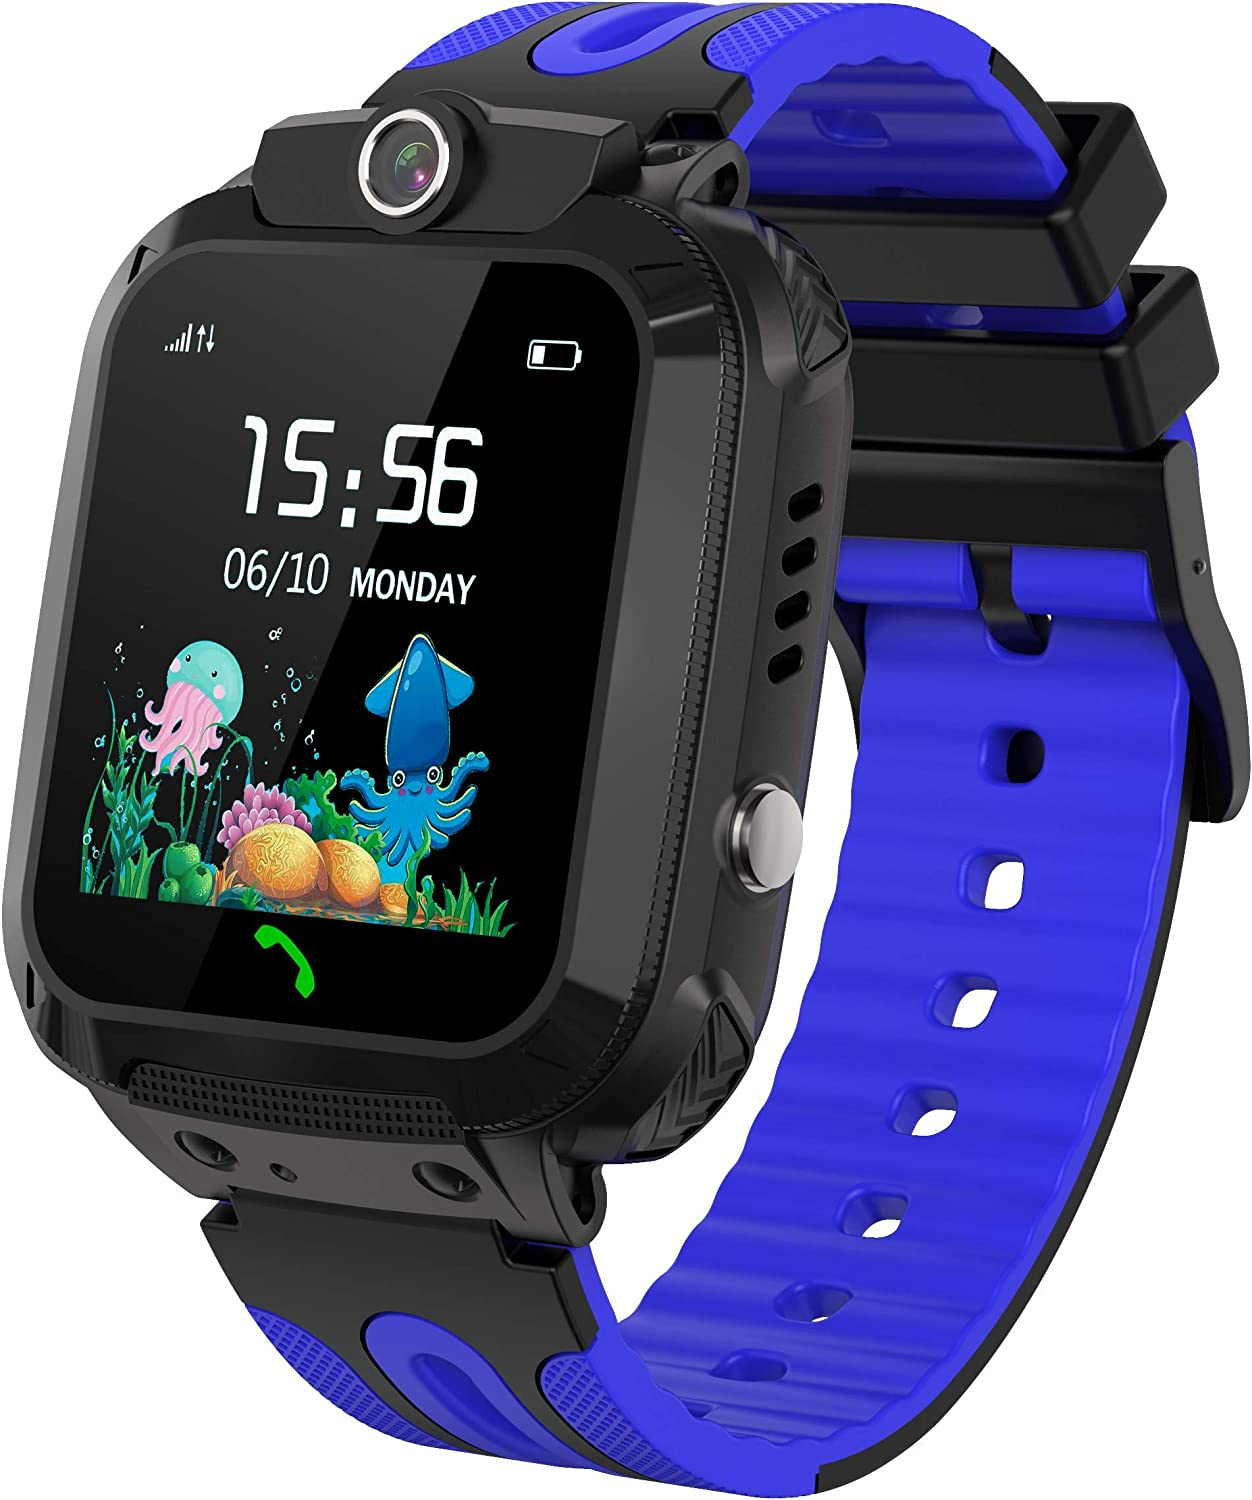 Kids Smart Watch Waterproof with GPS Tracker Phone Smartwatch SOS Game Voice Chat 1.44'' Touch Screen for Boys Girls Birthday Gift (Red) (Blue)